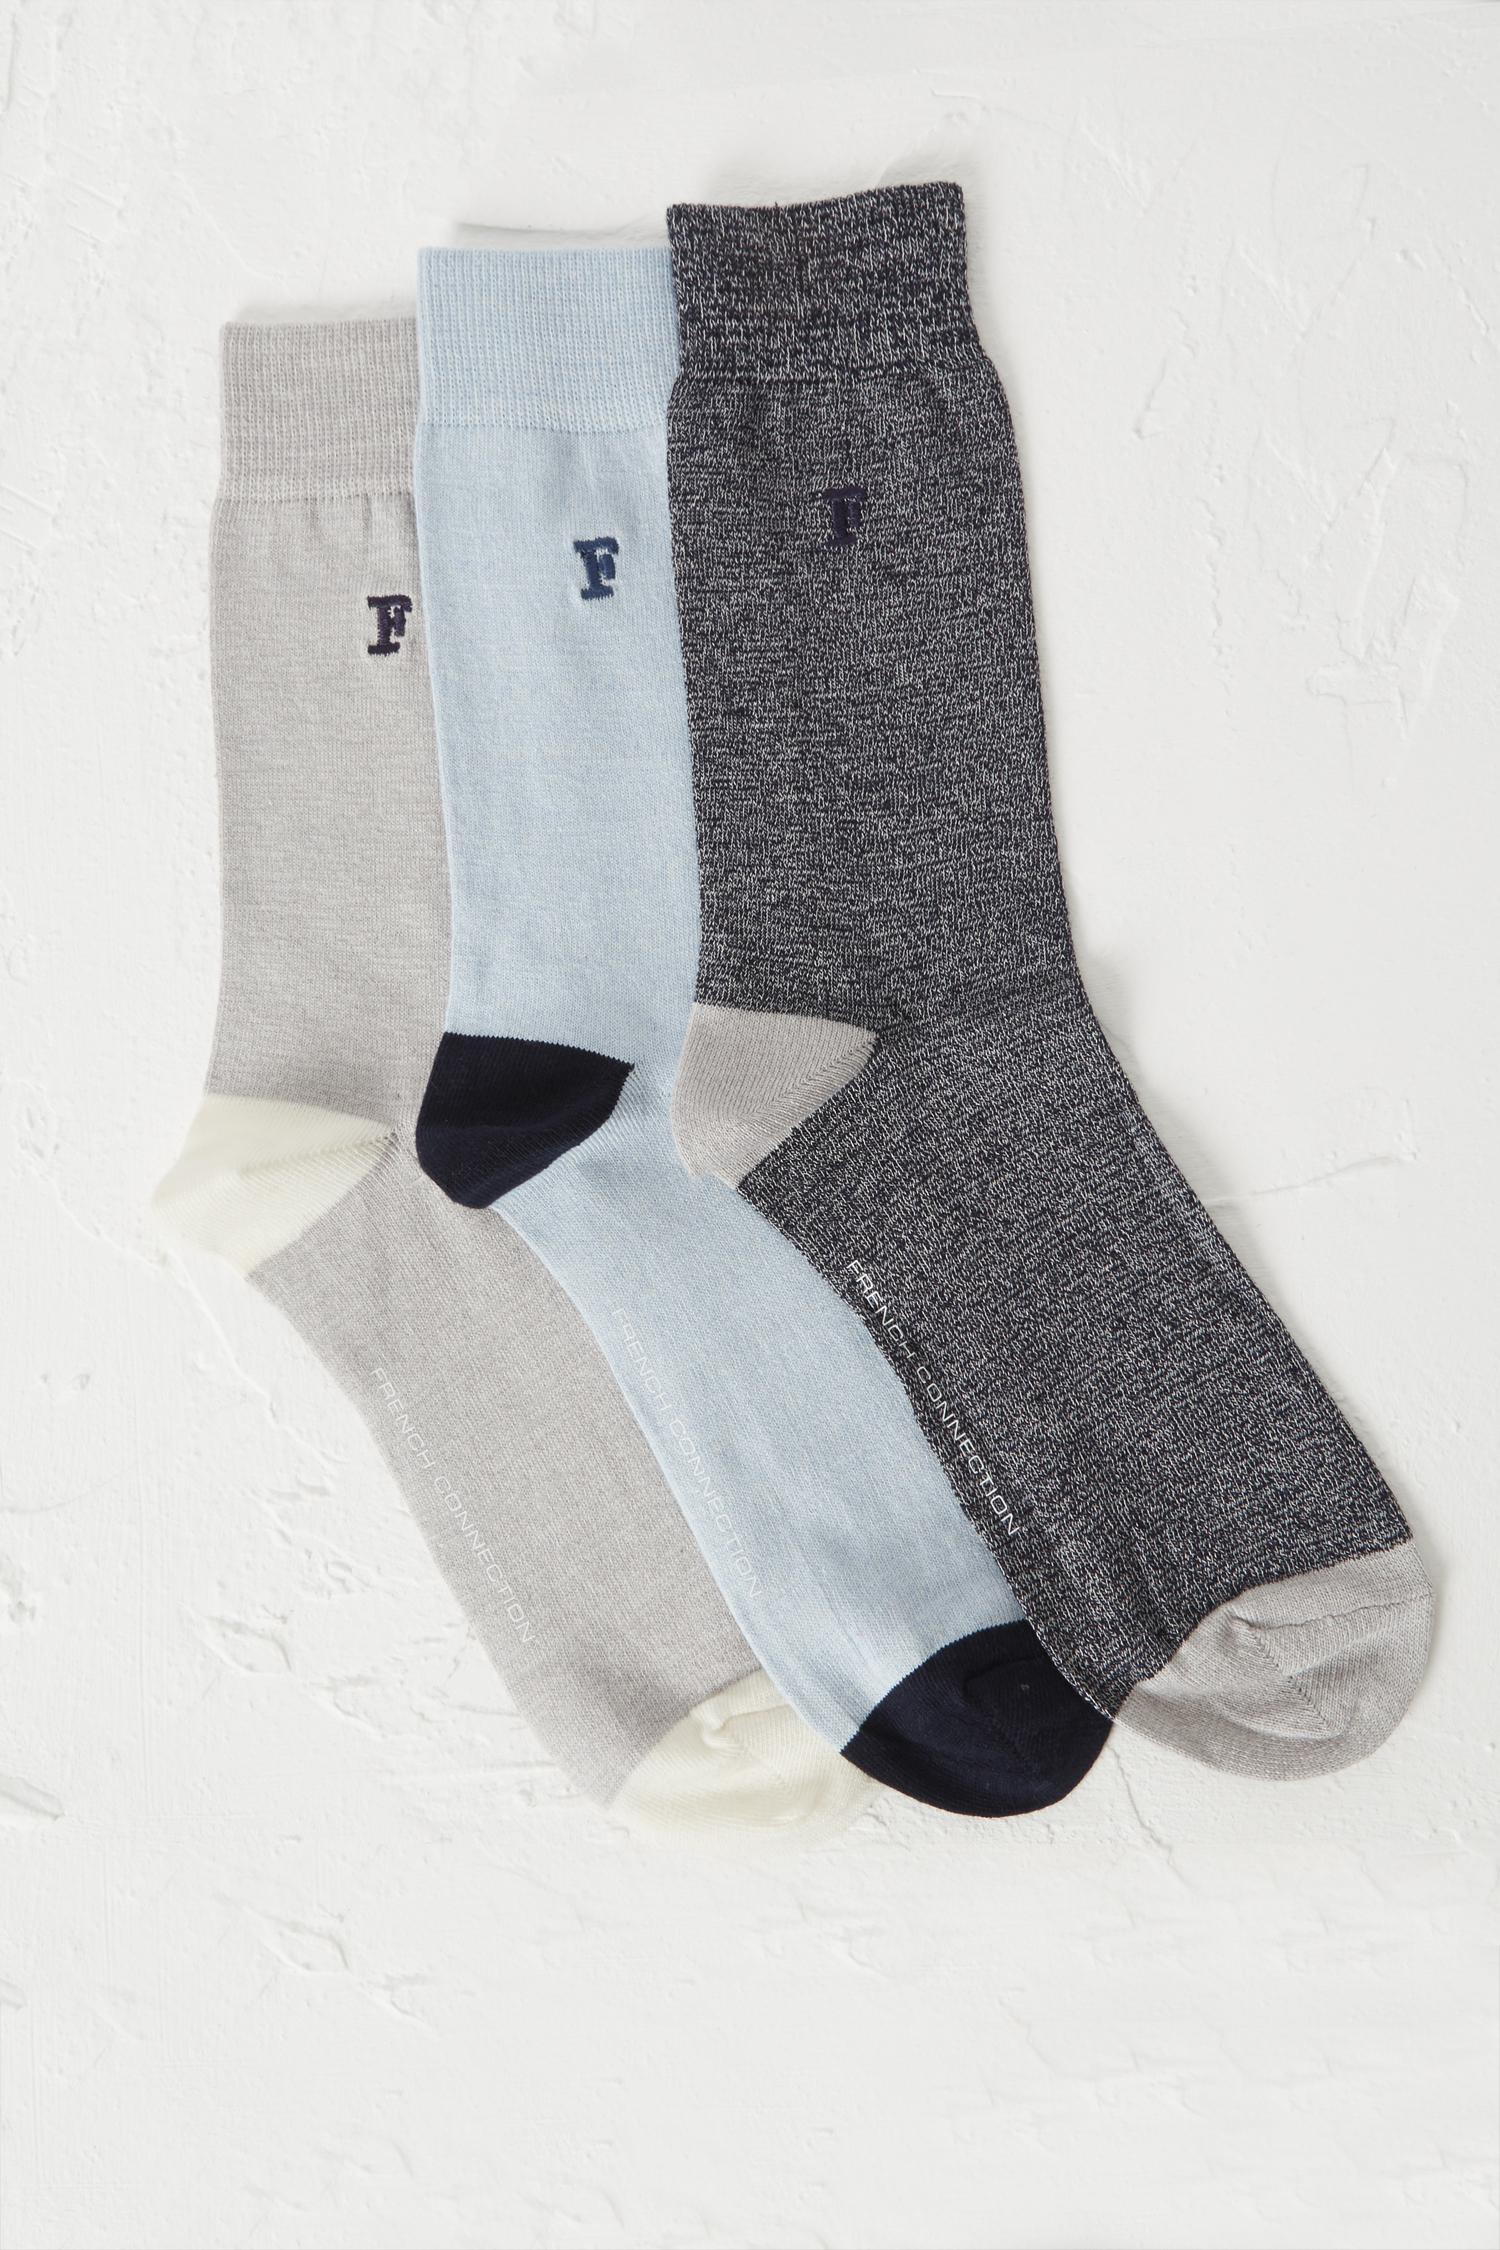 Mens Socks pack of 3 French Connection Cheap Enjoy Buy Cheap Outlet Locations Websites Cheap Price tu2sluVqx